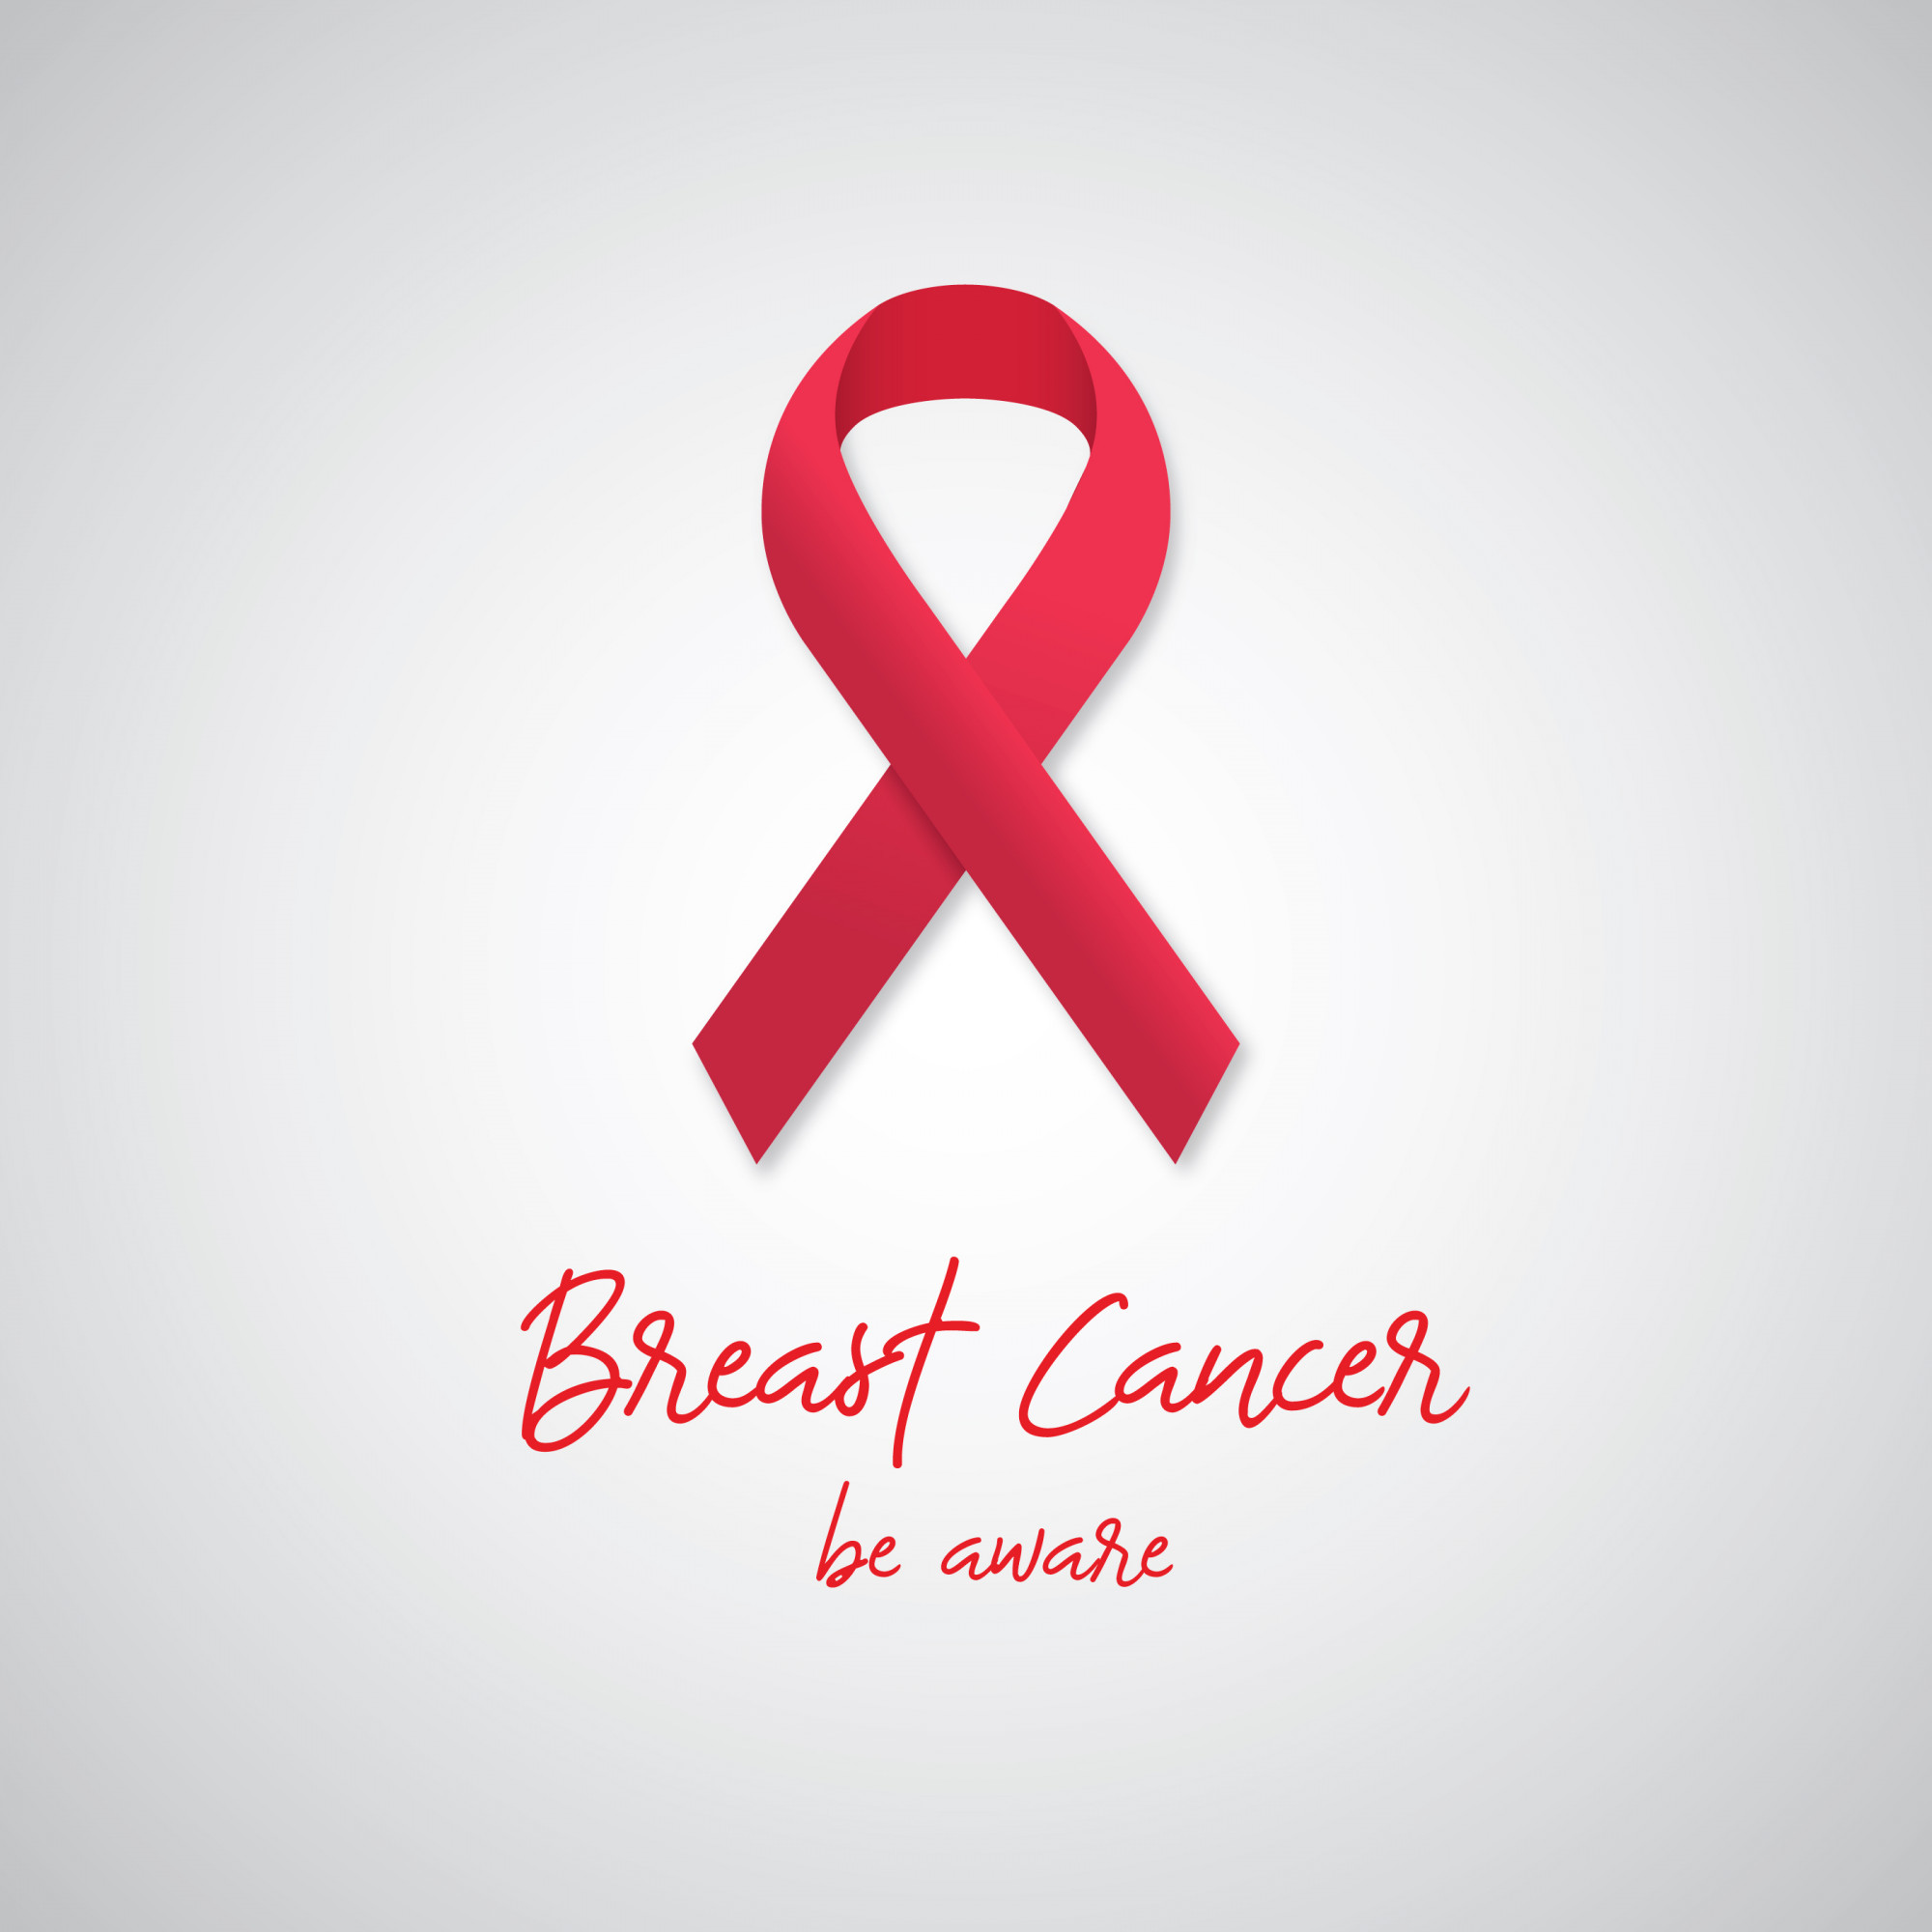 Breast Cancer - be aware